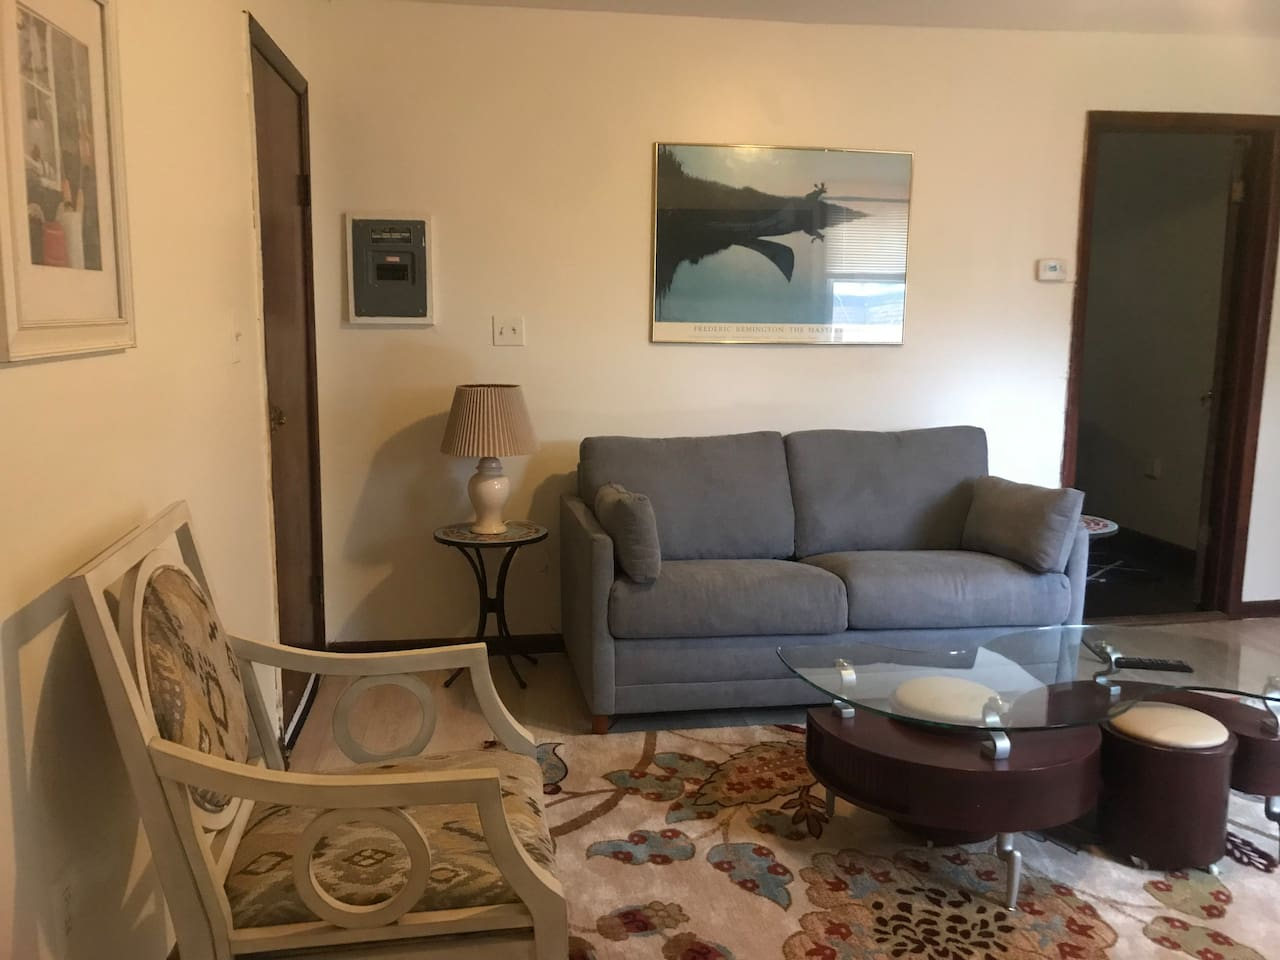 New living room furniture with a sleeper sofa!